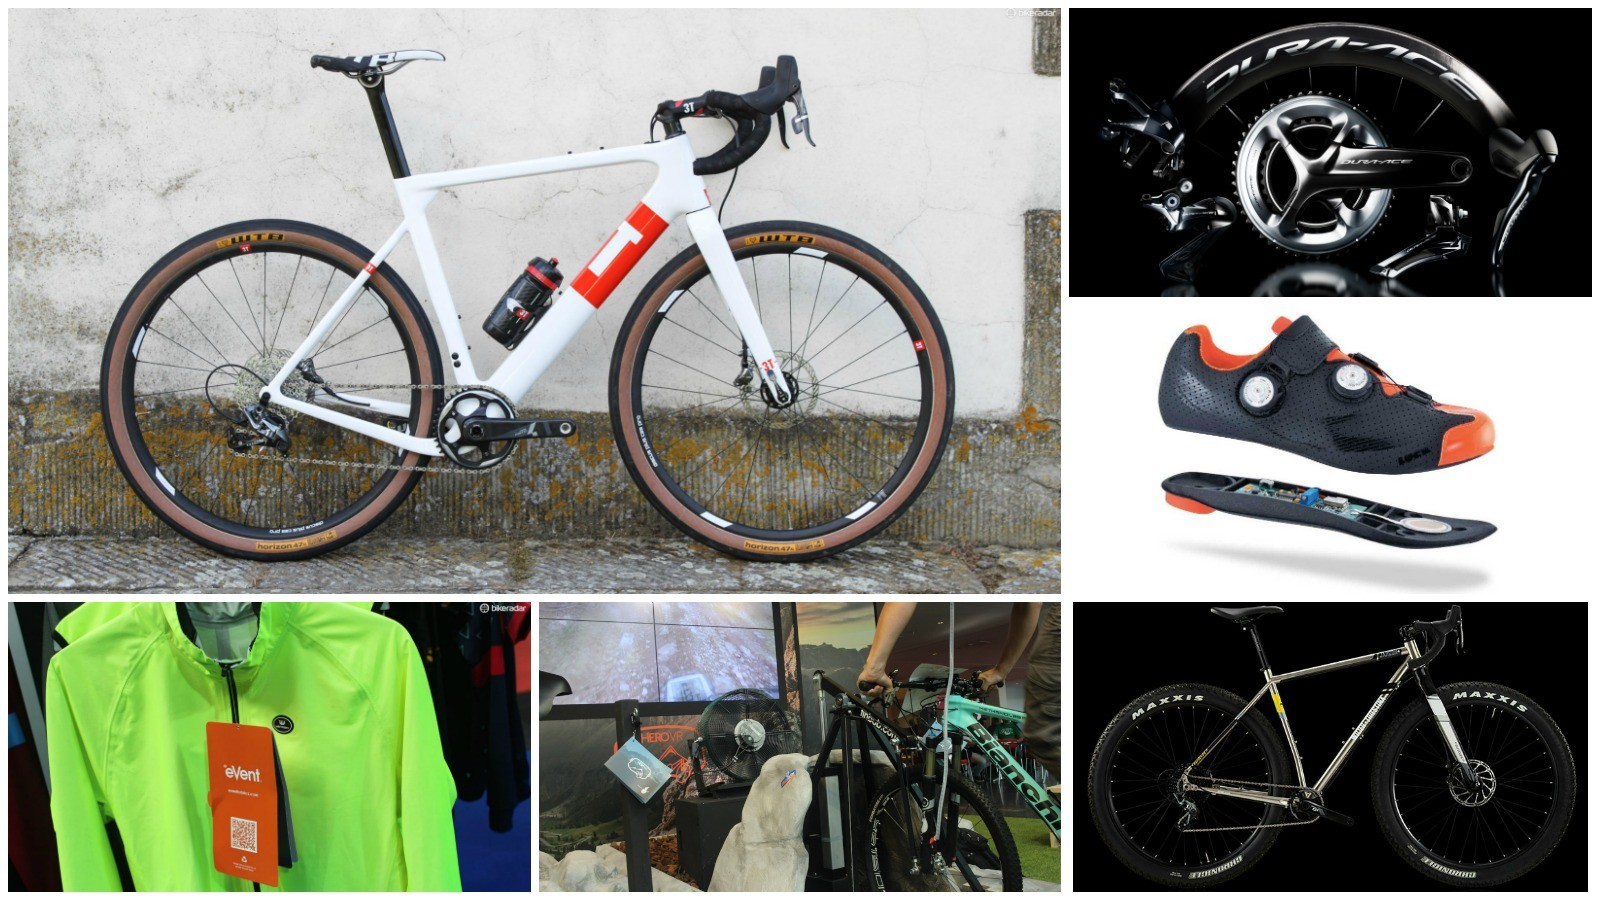 We're just back from Eurobike and very excited about what we saw